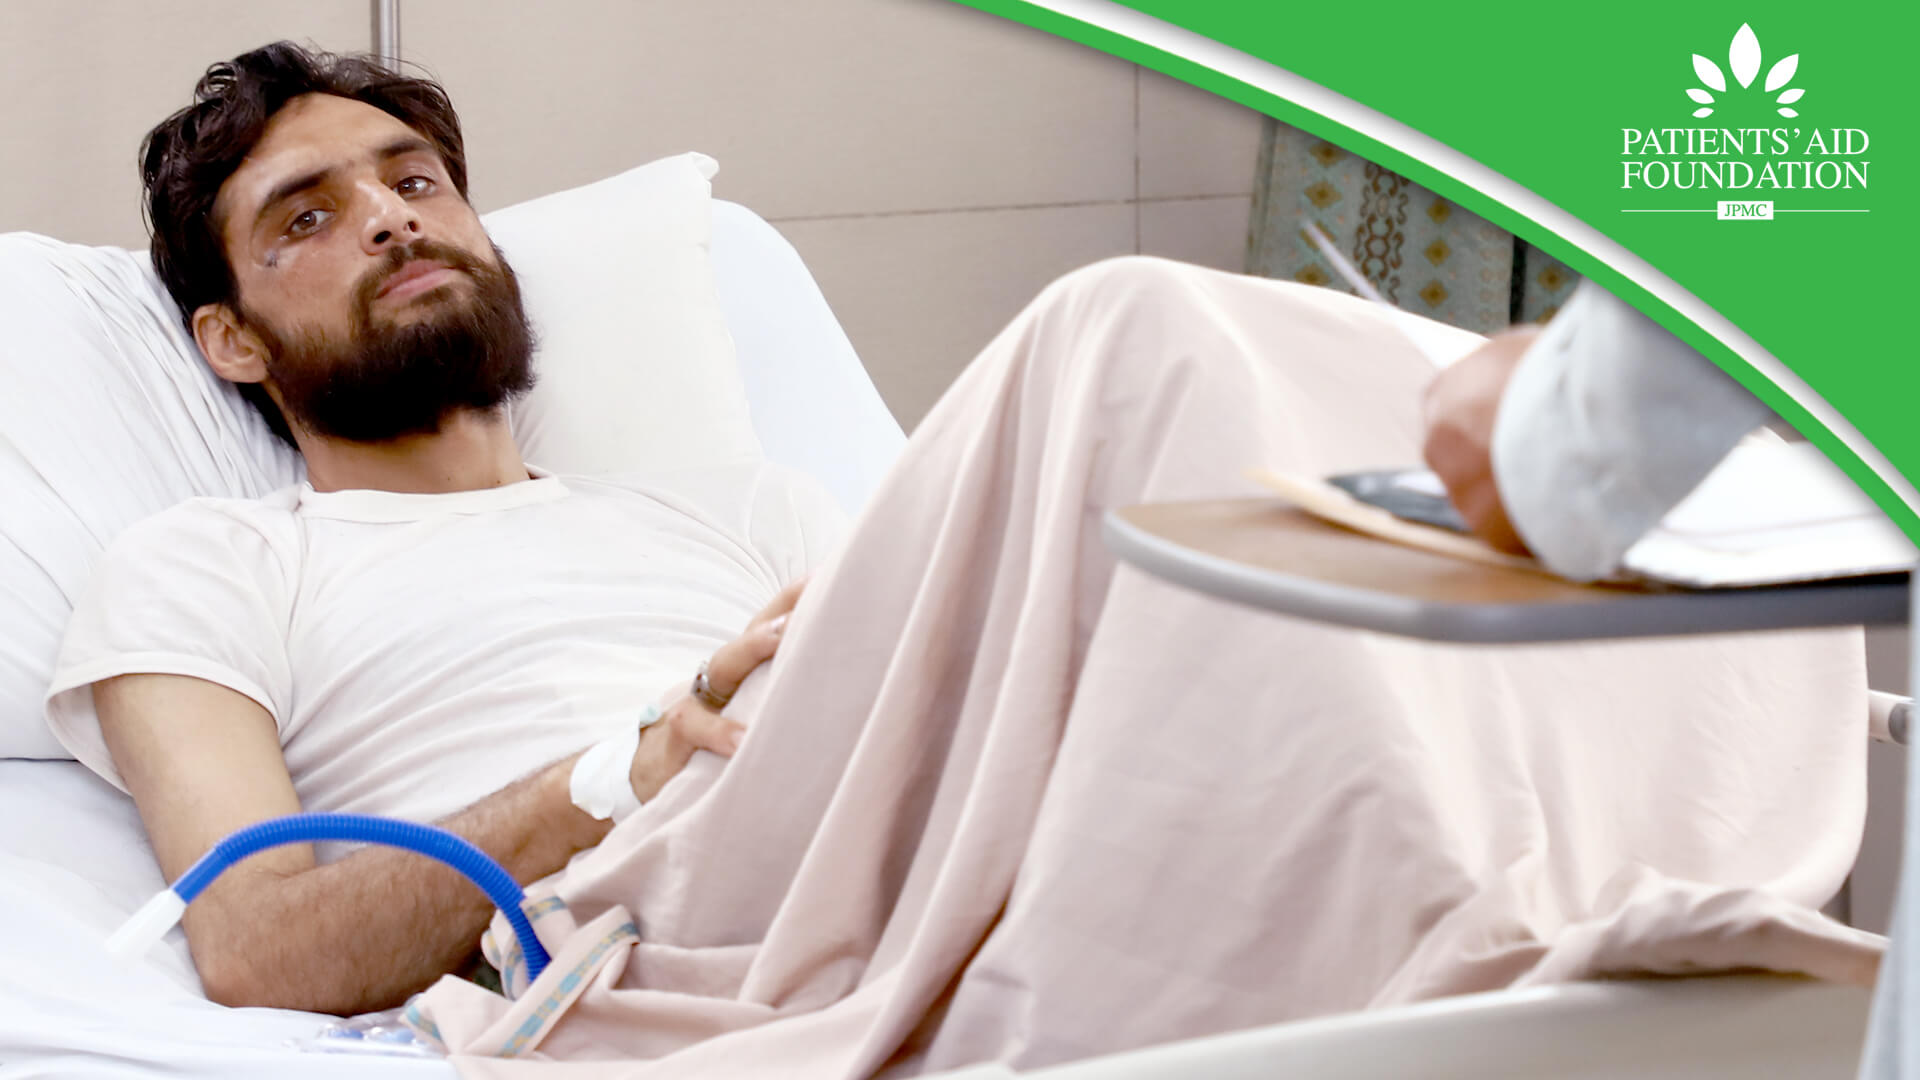 Help the Patients' Aid Foundation (PAF) for saving lives of needy patients through your Zakat & donation